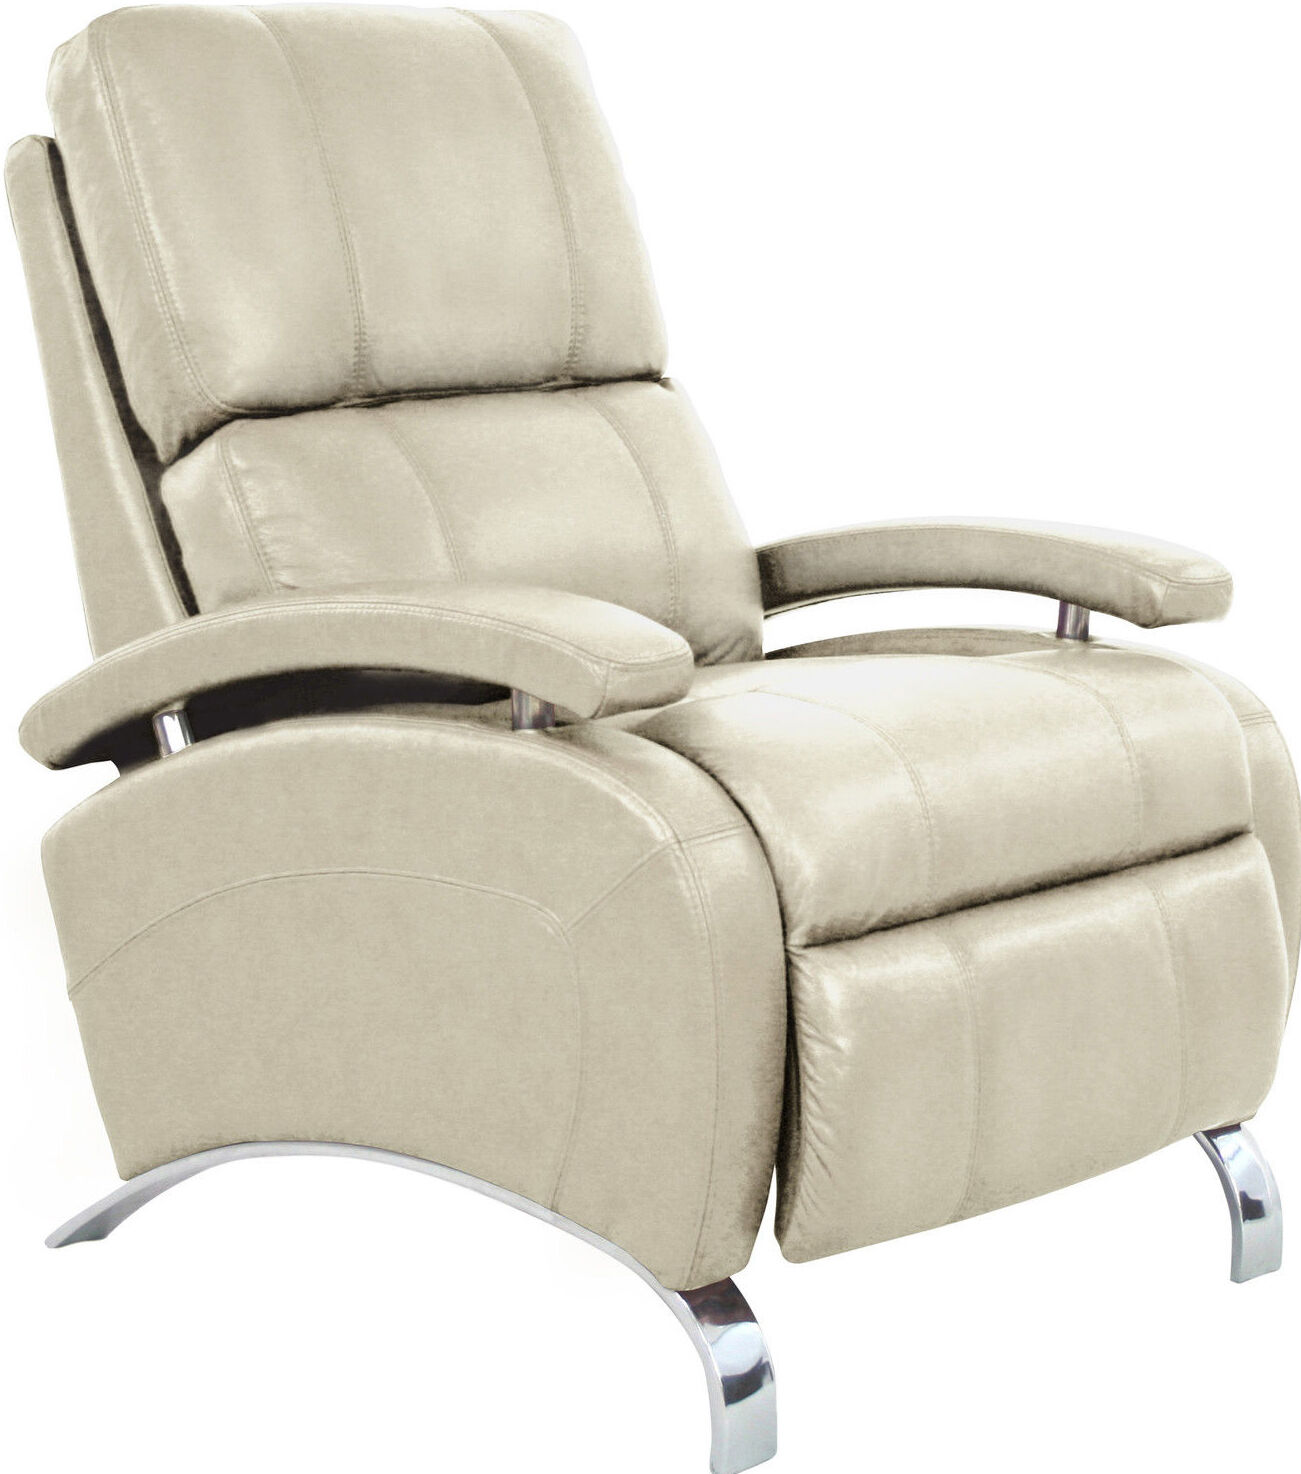 Barcalounger Oracle Recliner  sc 1 st  eBay & Top 10 Best Recliners | eBay islam-shia.org